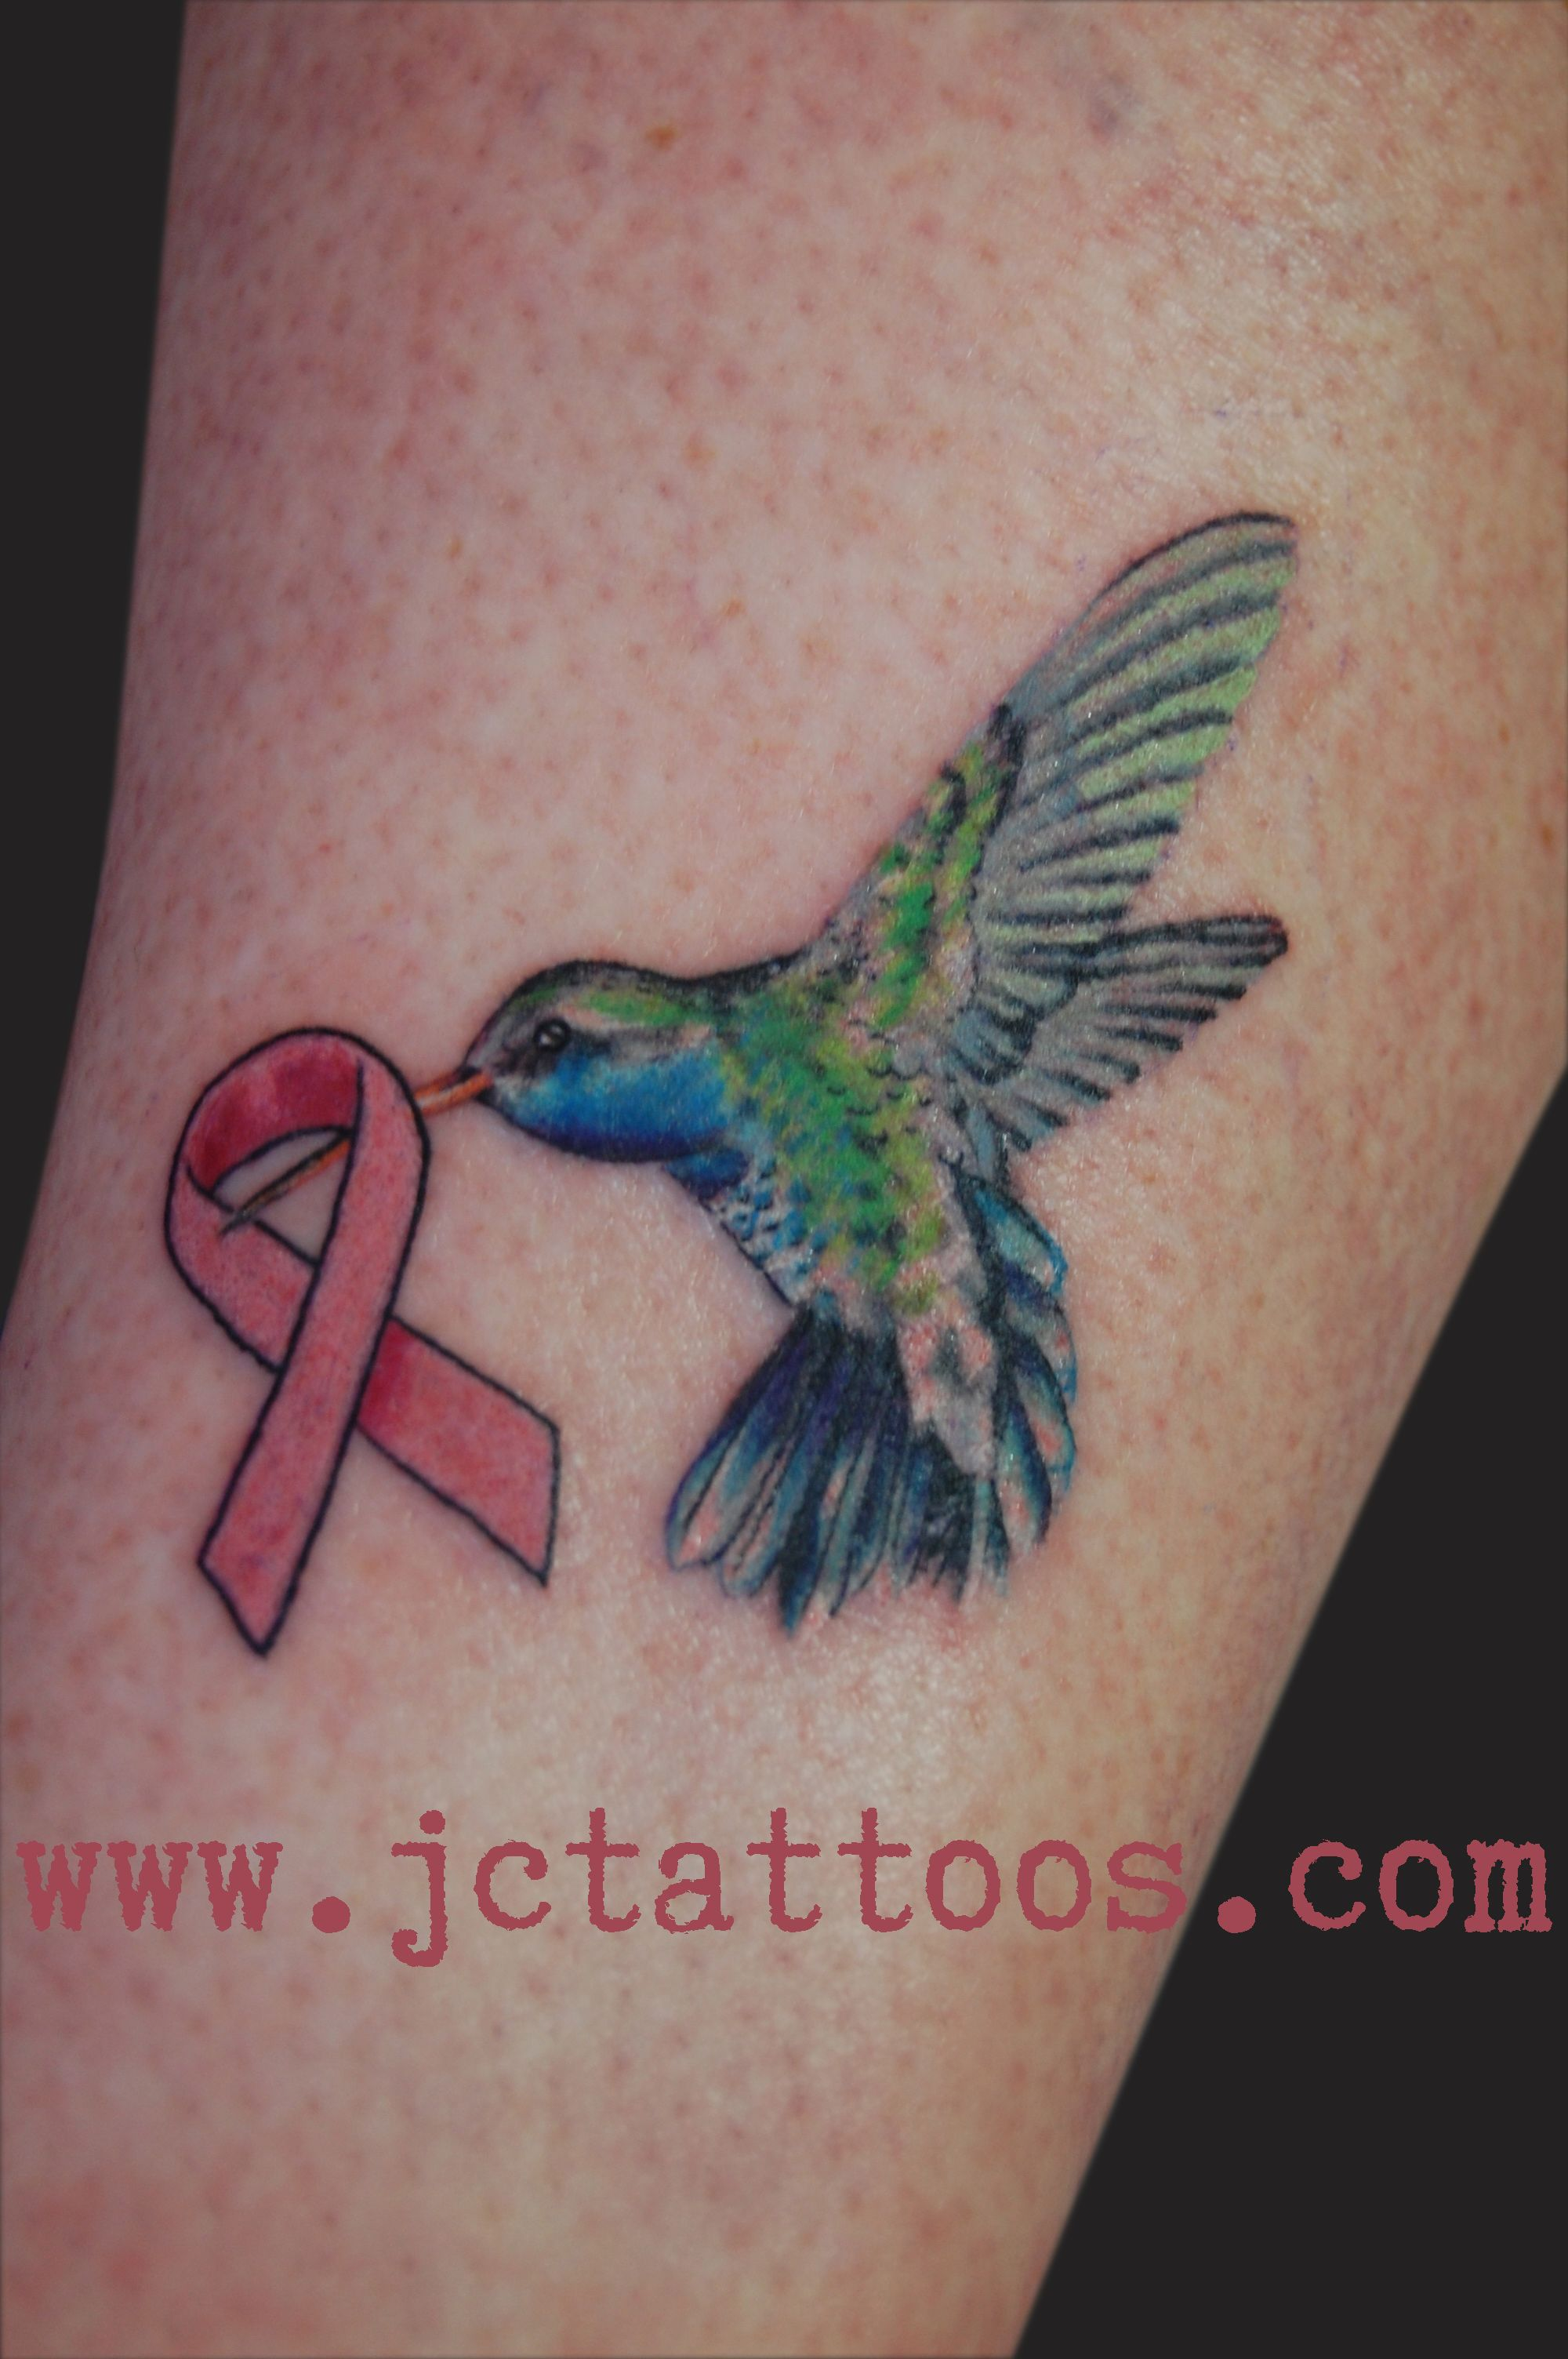 Br**St Cancer Ribbon And Hummingbird Tattoo Love This I Ideas And Designs